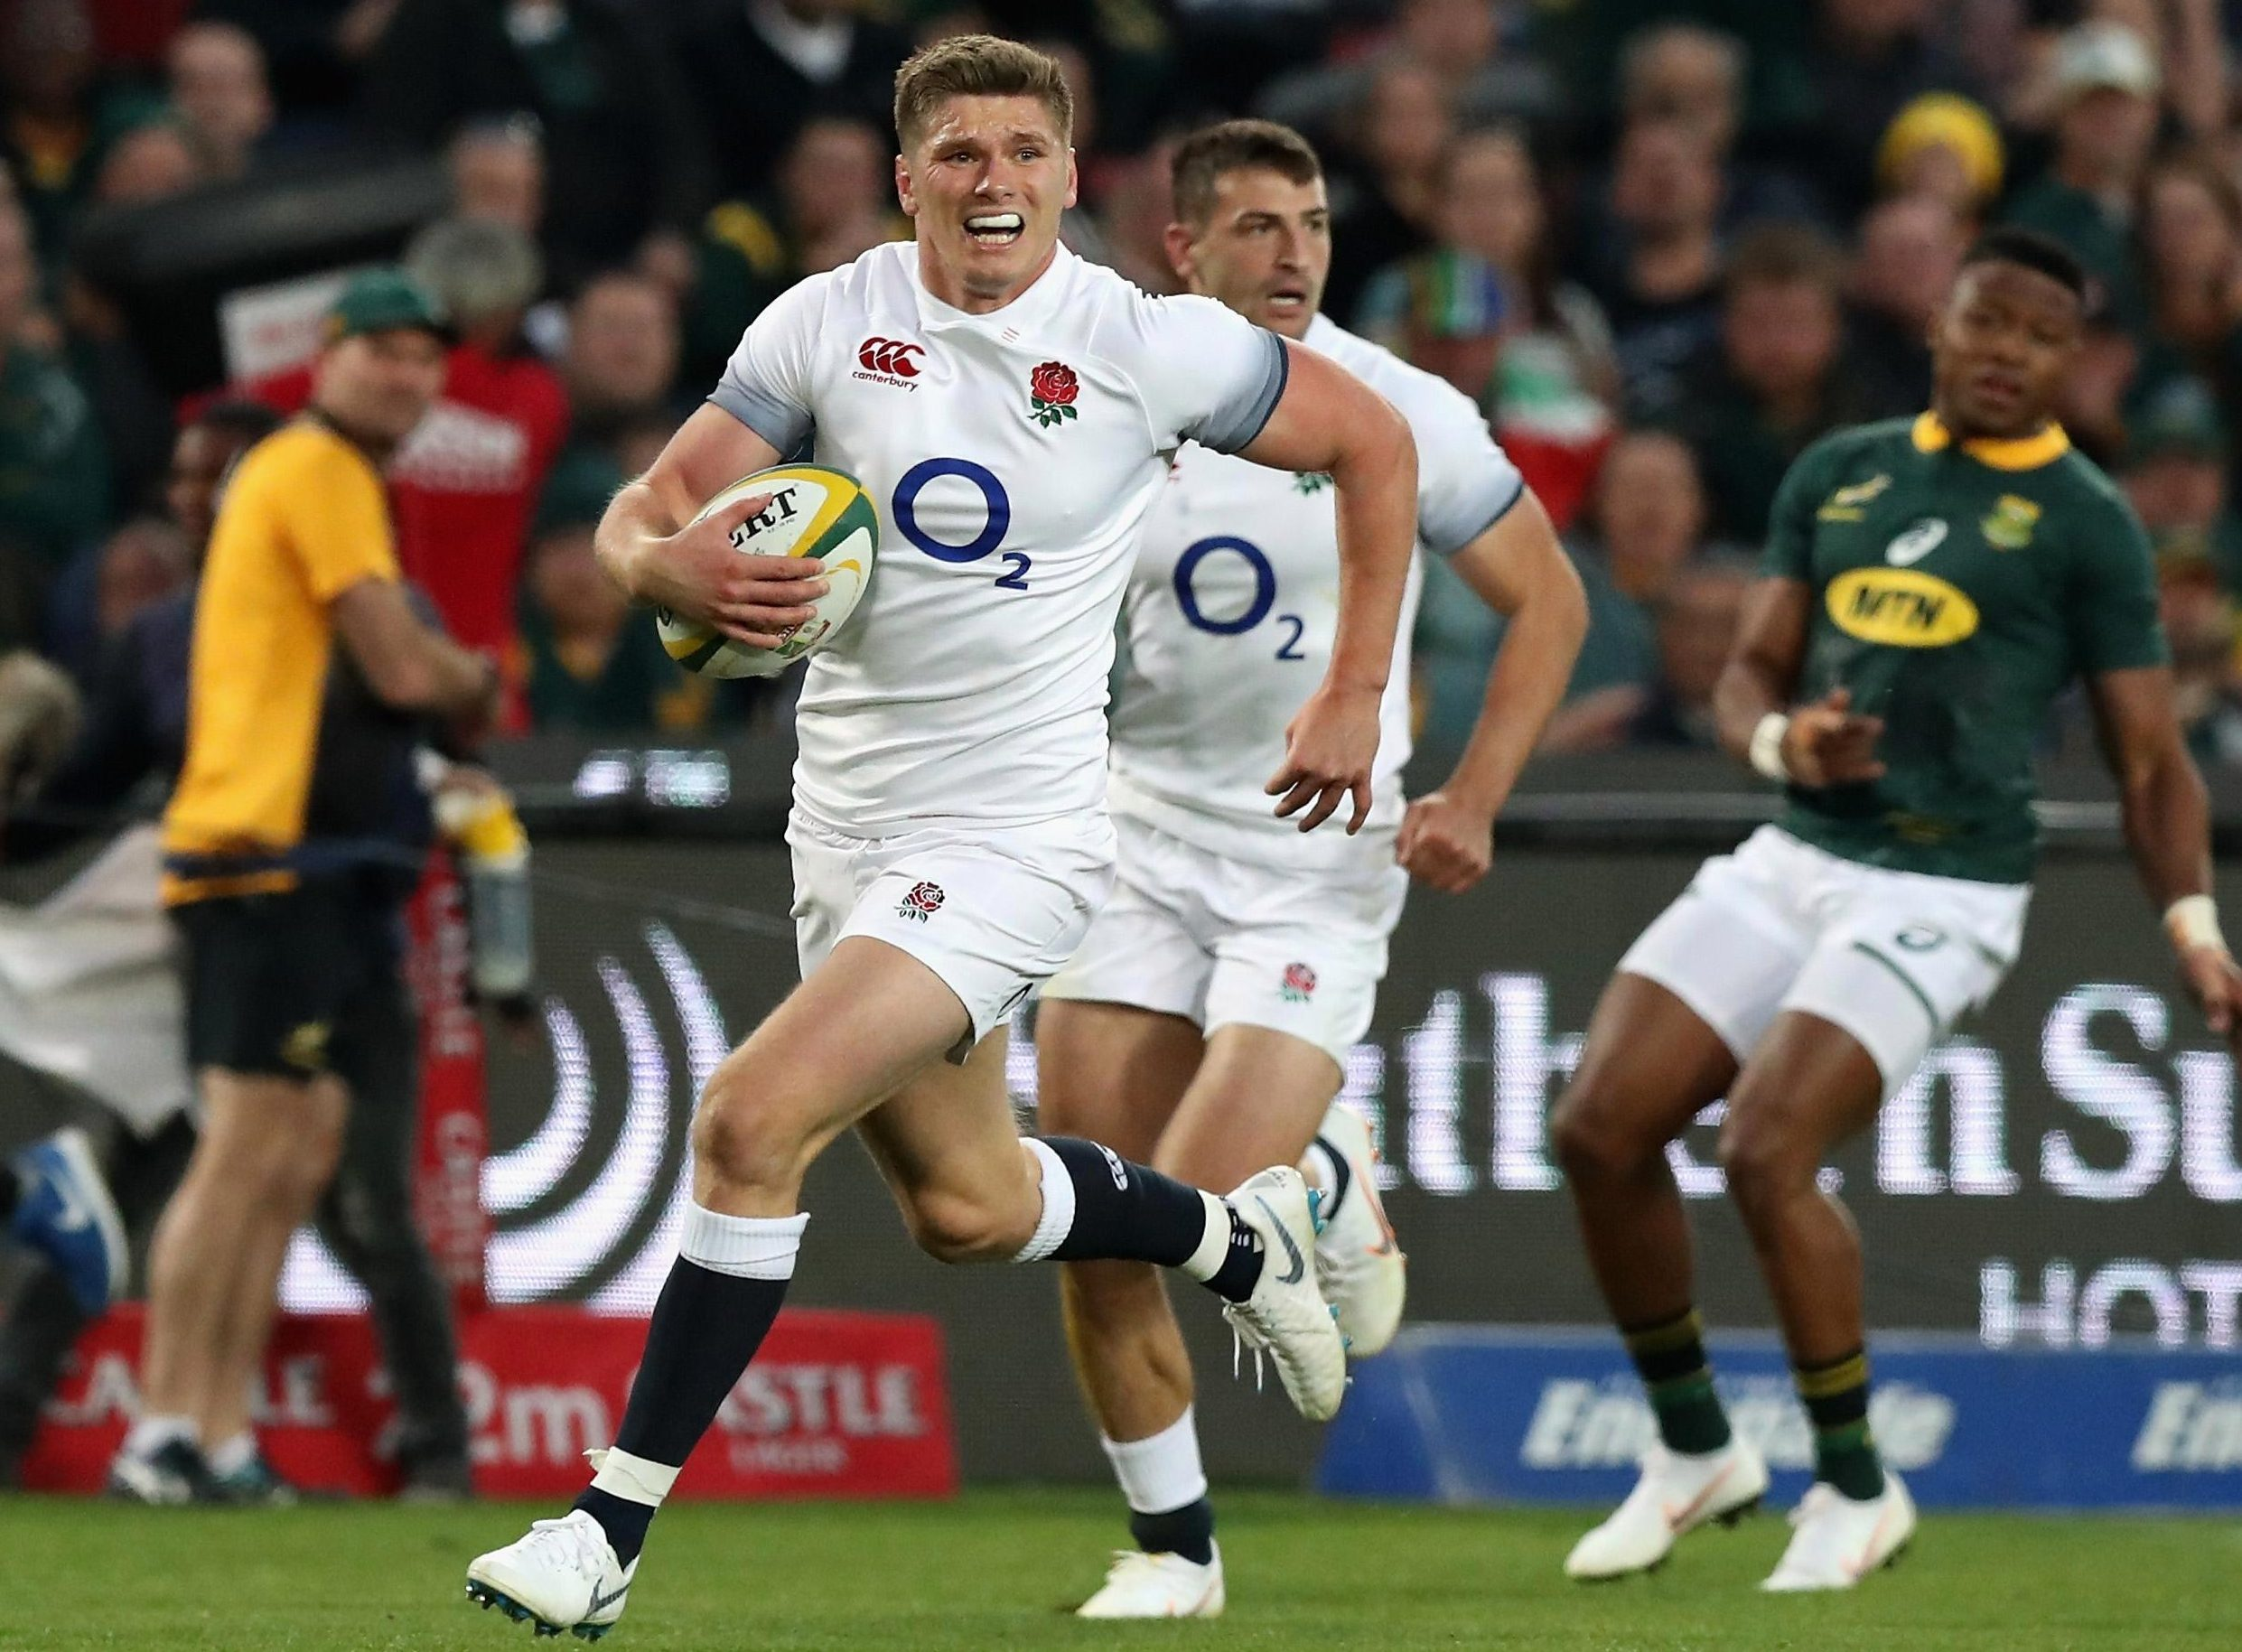 Owen Farrell may have scored a try during the first test match, along with Mike Brown, but their side then fell apart in disastrous fashion